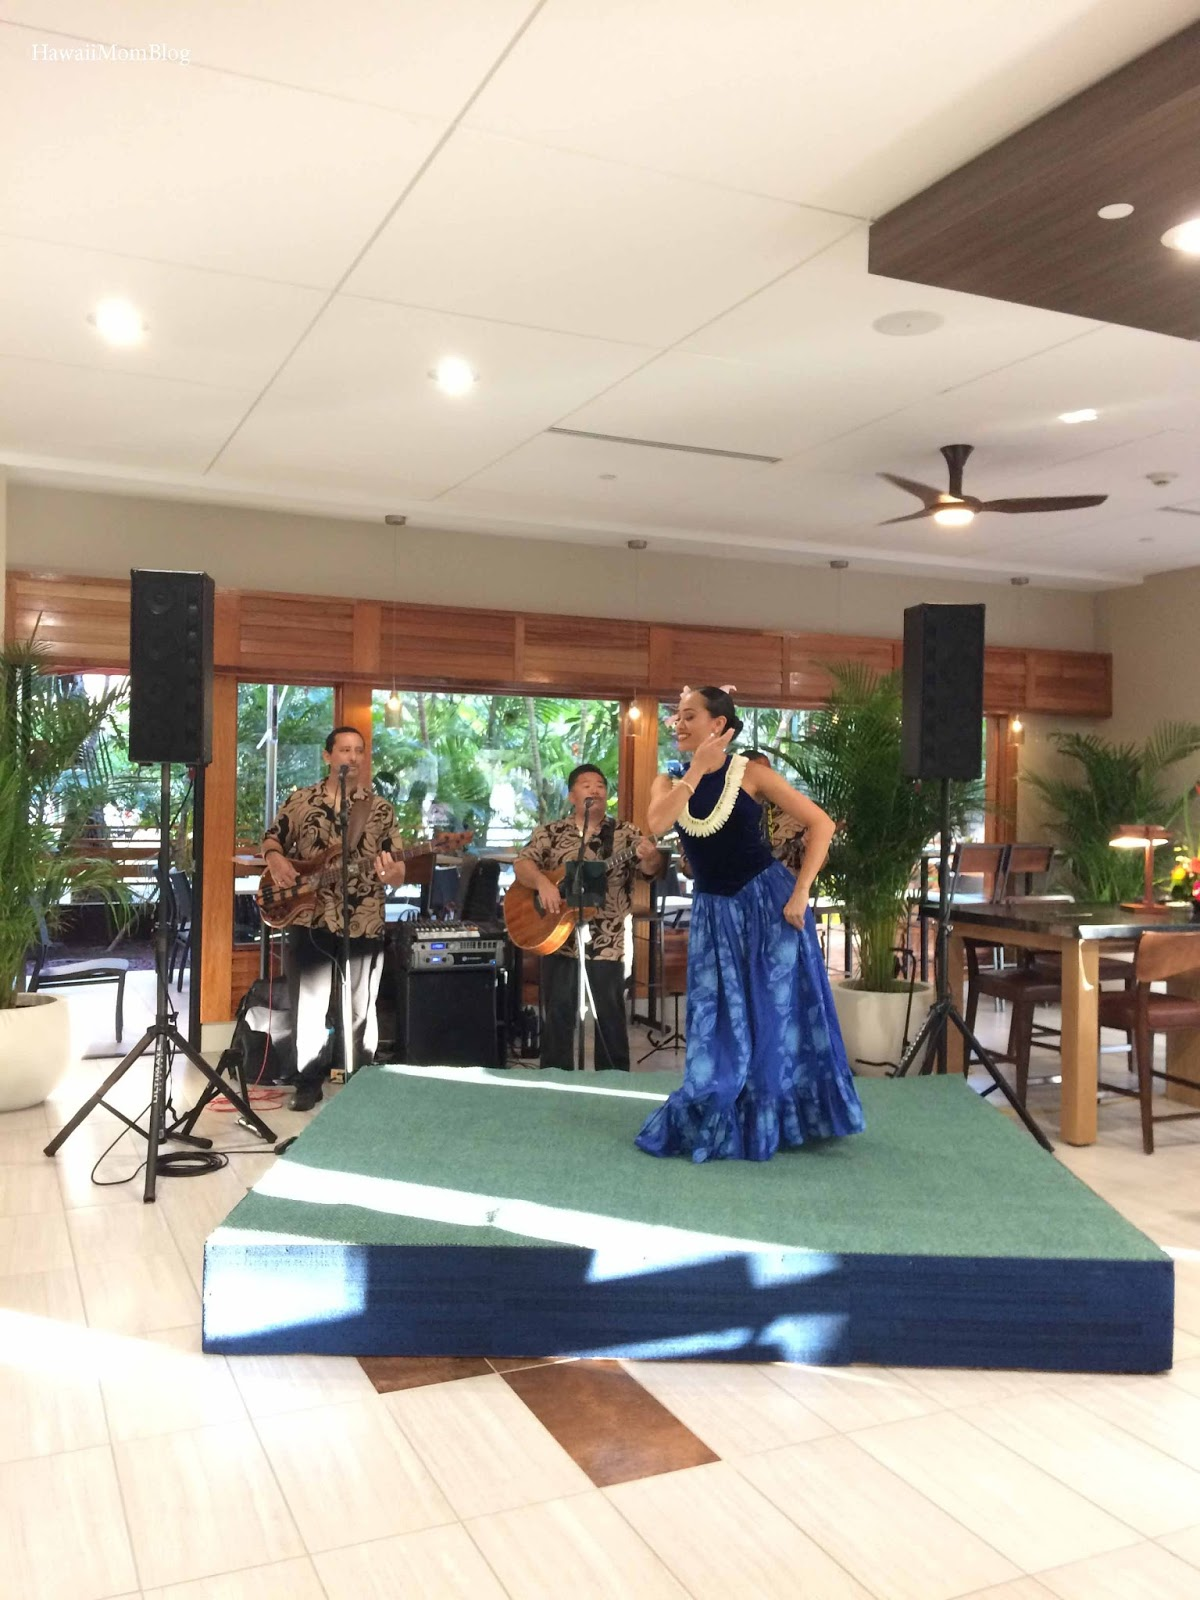 Hawaii Mom Blog: Holiday Inn Express Honolulu-Waikiki ...